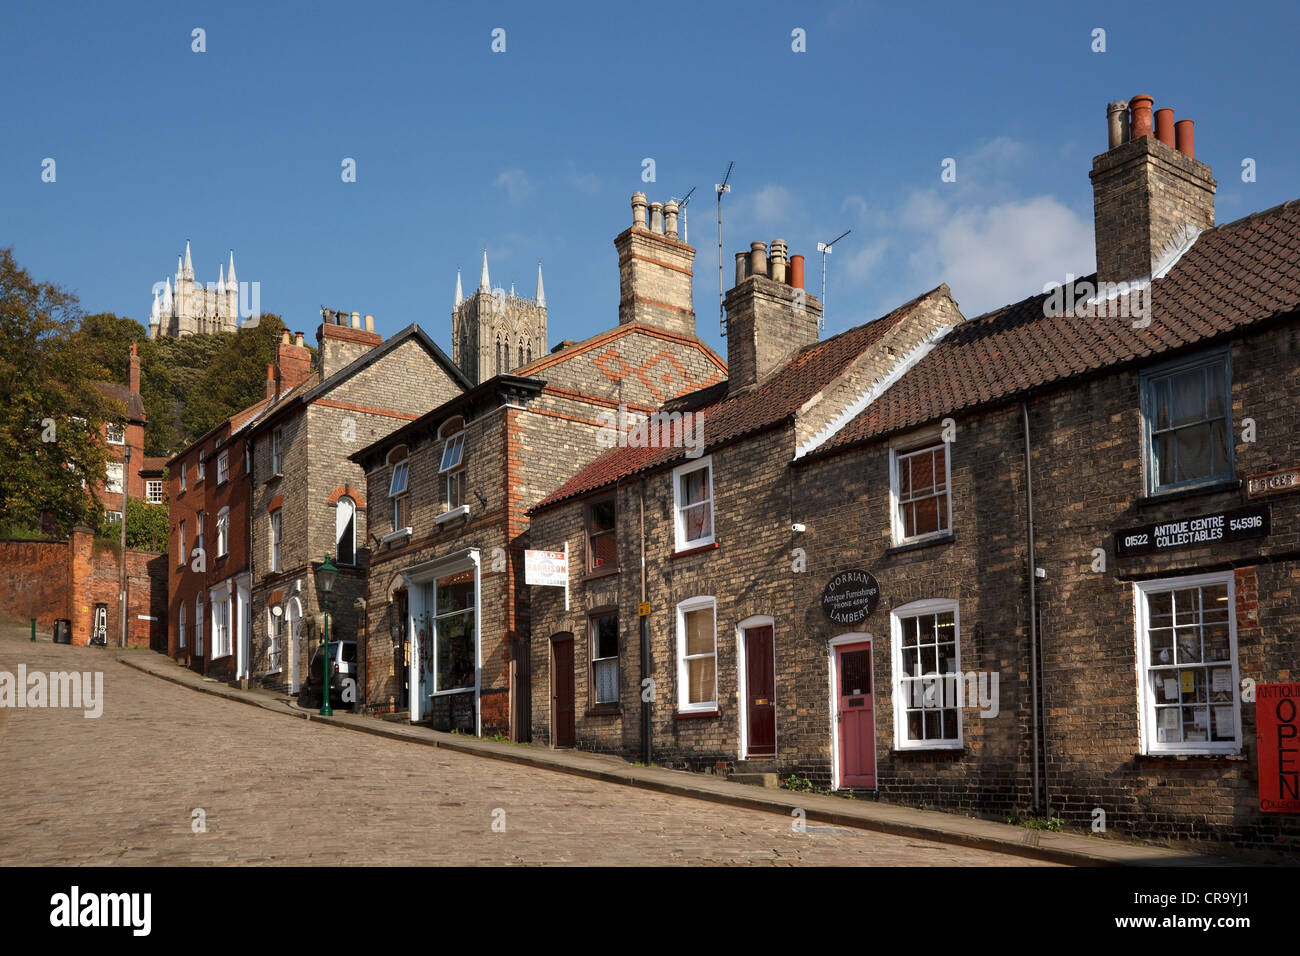 Old traditional terraced shop fronts and houses on cobbled street, Steep Hill, Lincoln, Lincolnshire, England, UK - Stock Image